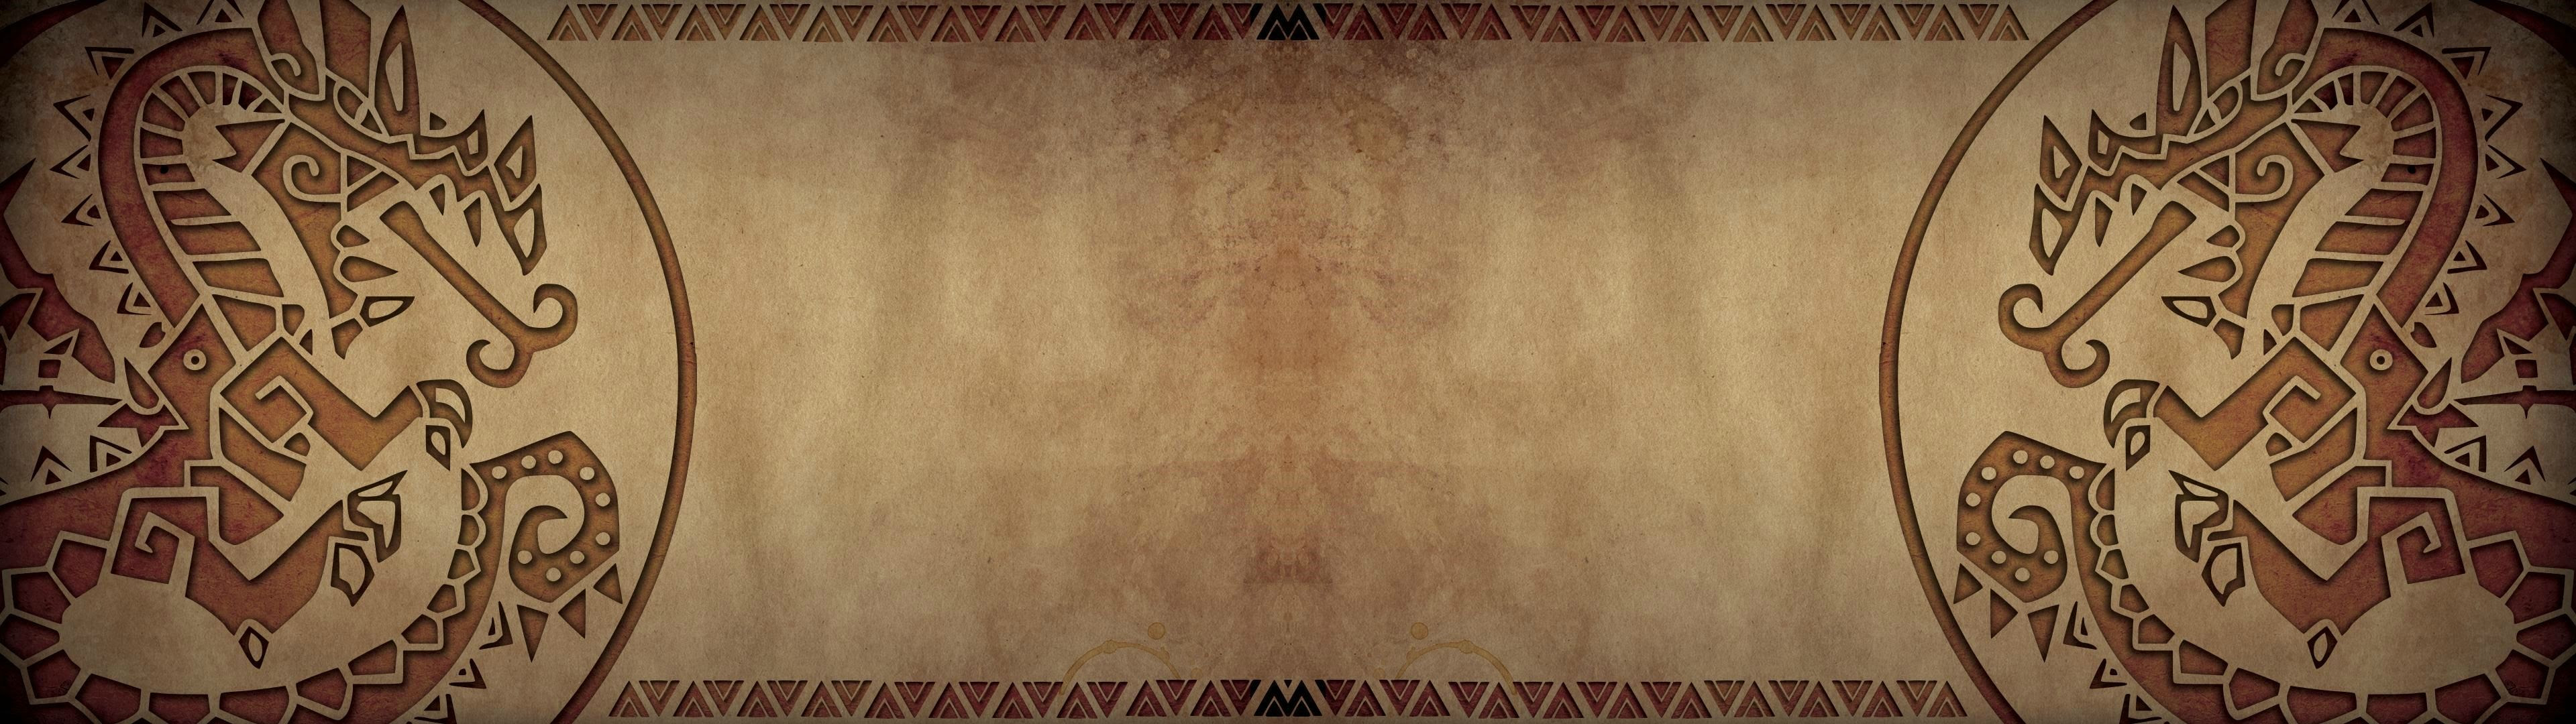 Made A Monster Hunter Background For You Awesome Poeple Hope You